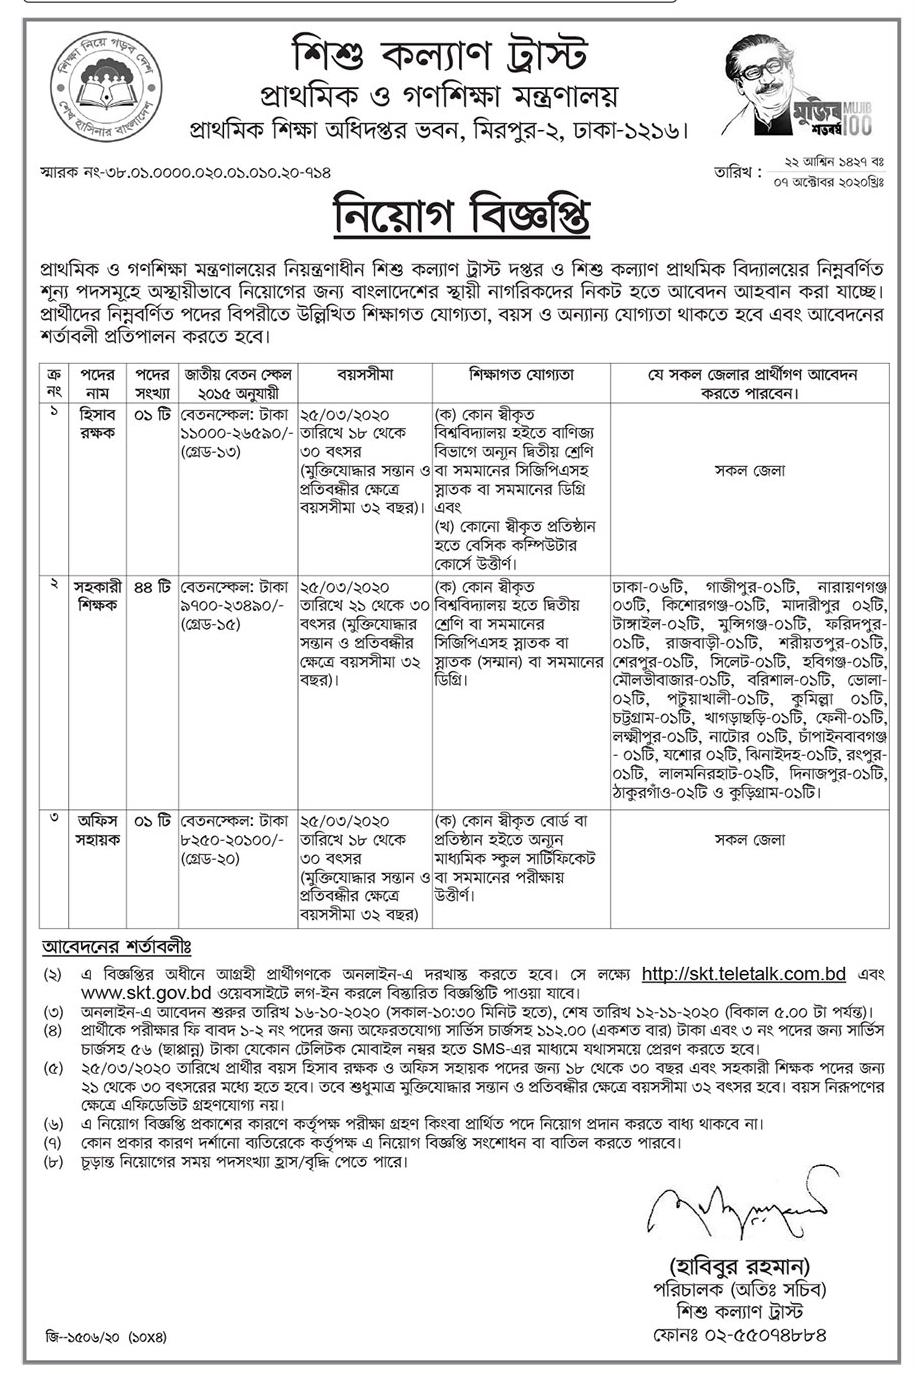 Bangladesh Job notice 2020 All Section